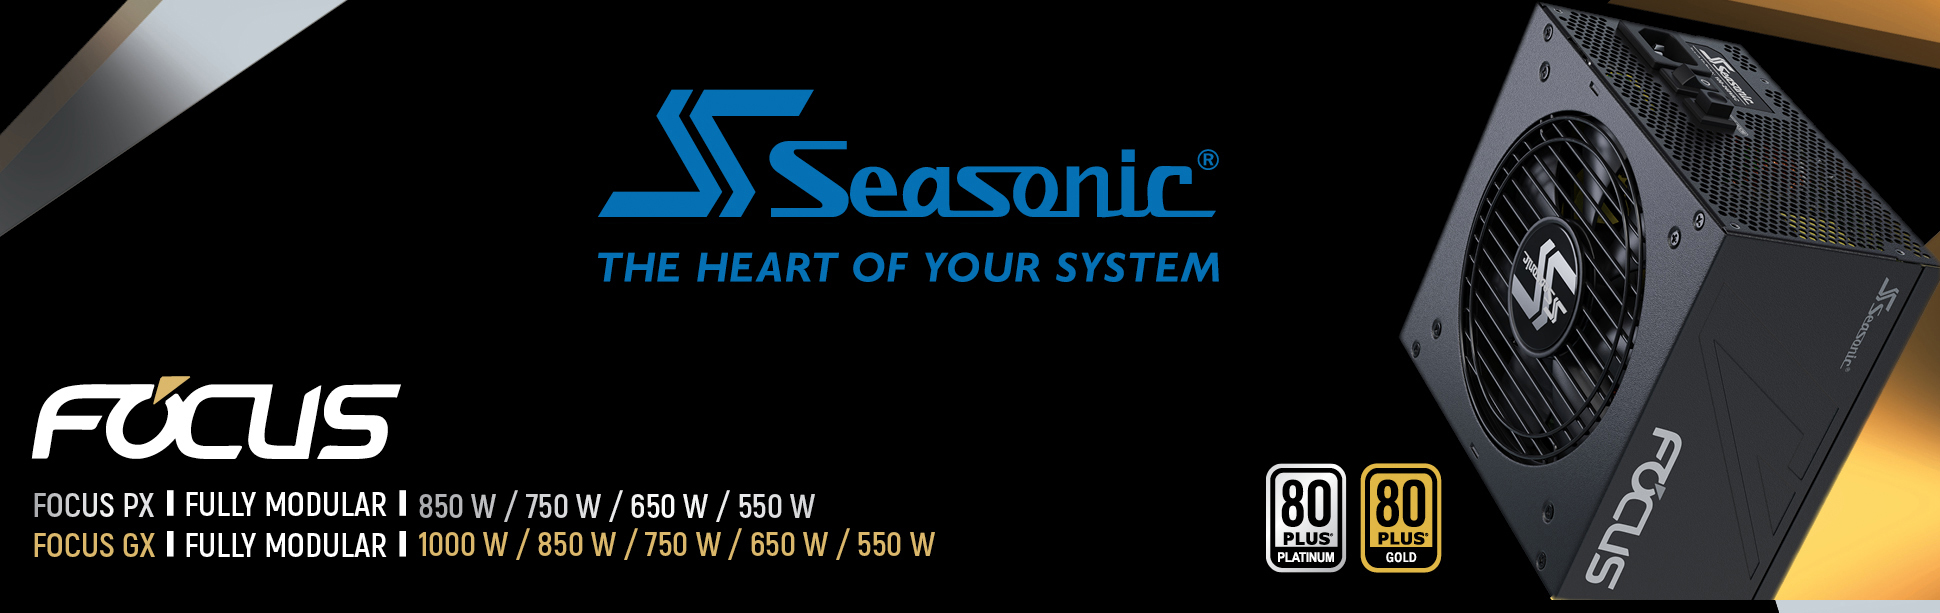 Seasonic Focus side view and Seasonic logo and 80 plus icon